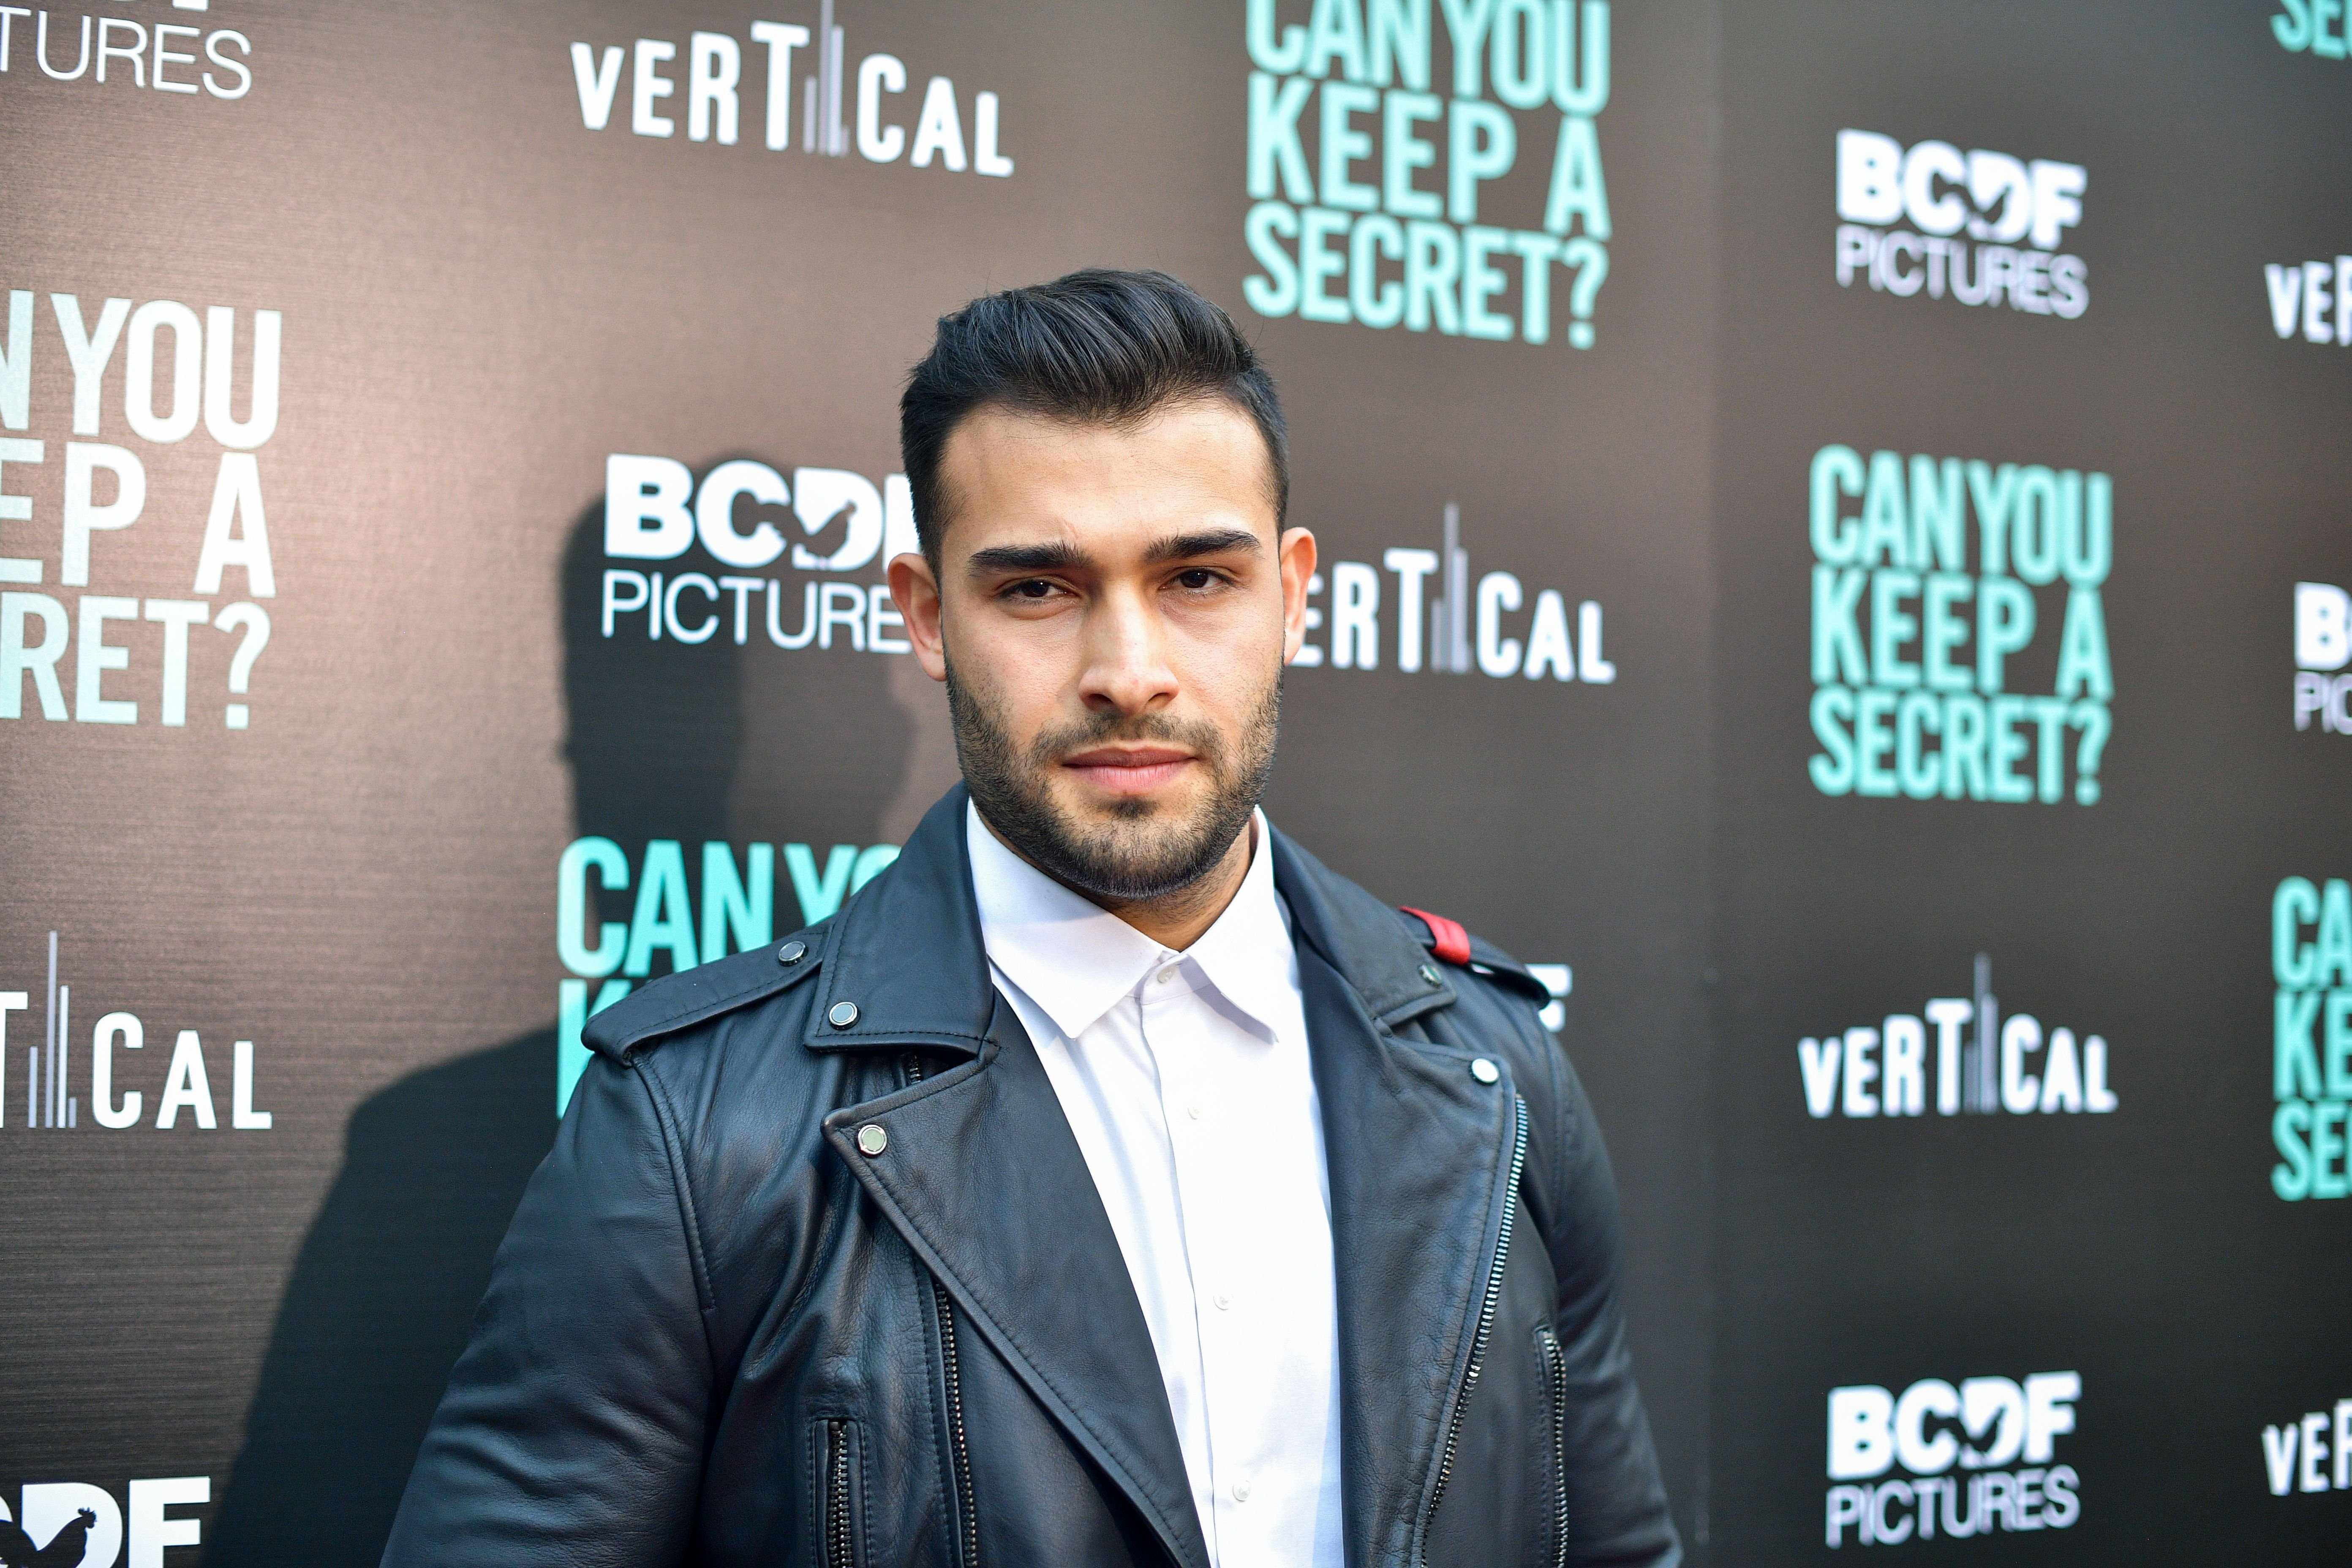 """Sam Asghari at the premiere of """"Can You Keep A Secret?"""" at ArcLight Hollywood on August 28, 2019, in California   Photo:  Matt Winkelmeyer/Getty Images)"""